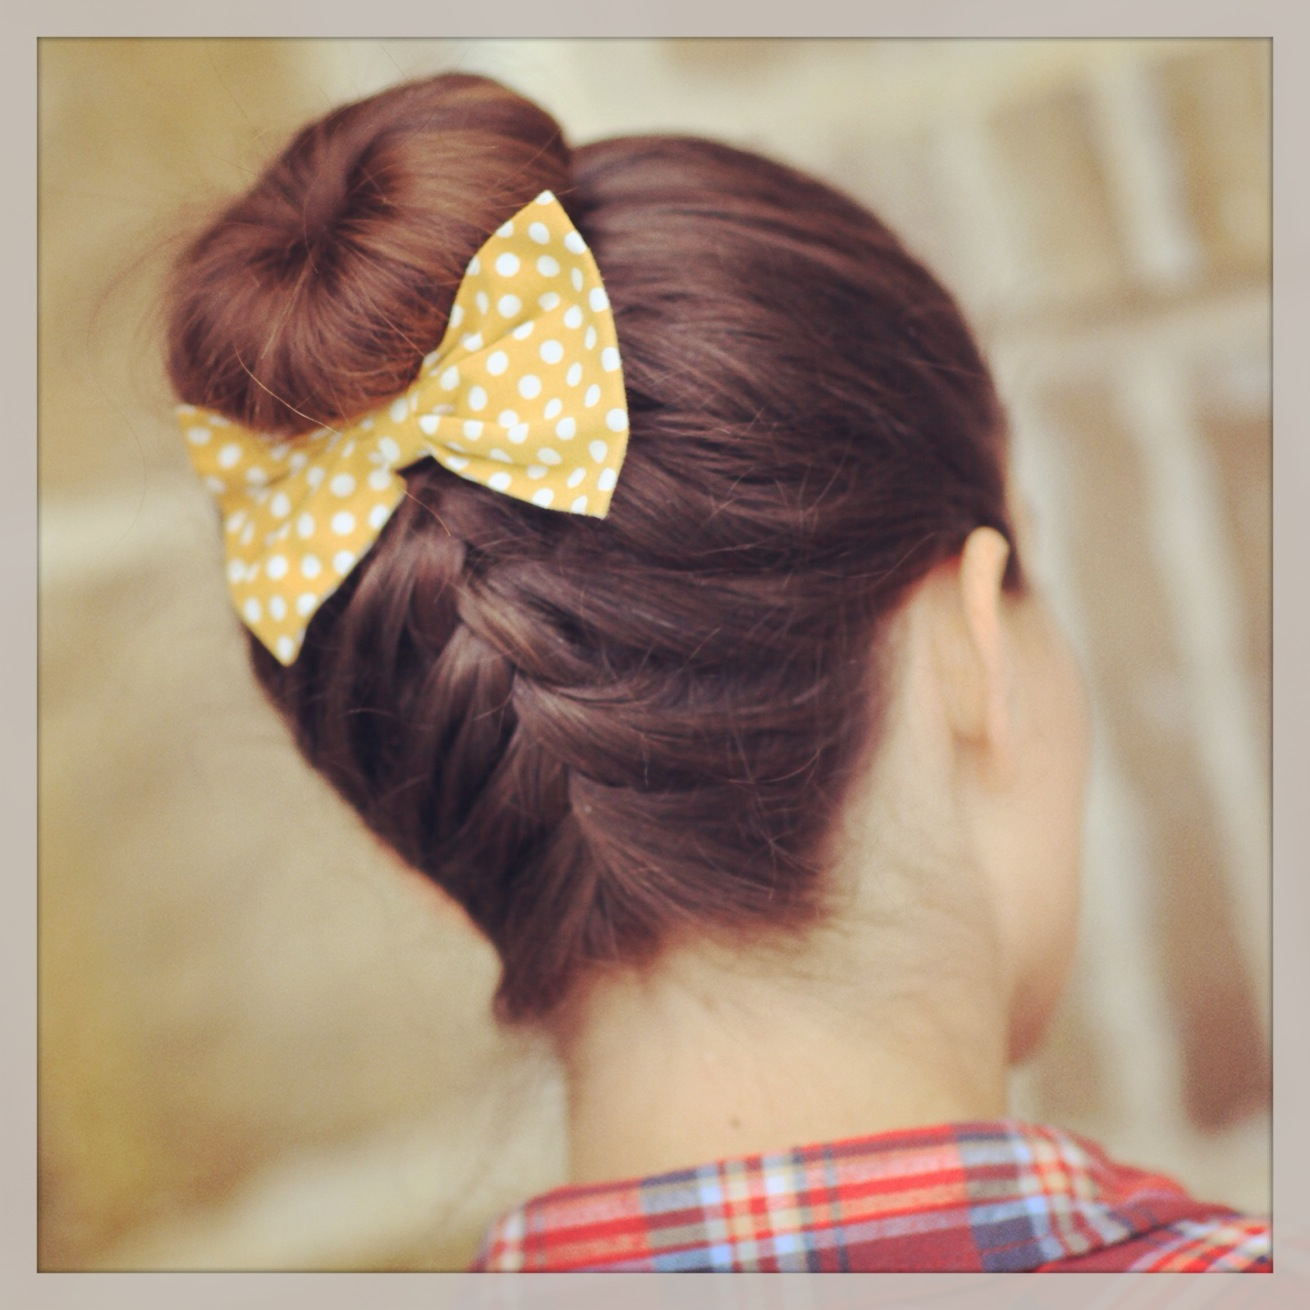 French Up High Bun   Updo Hairstyle Ideas   Cute Girls Hairstyles Upside Down French Braid Bun